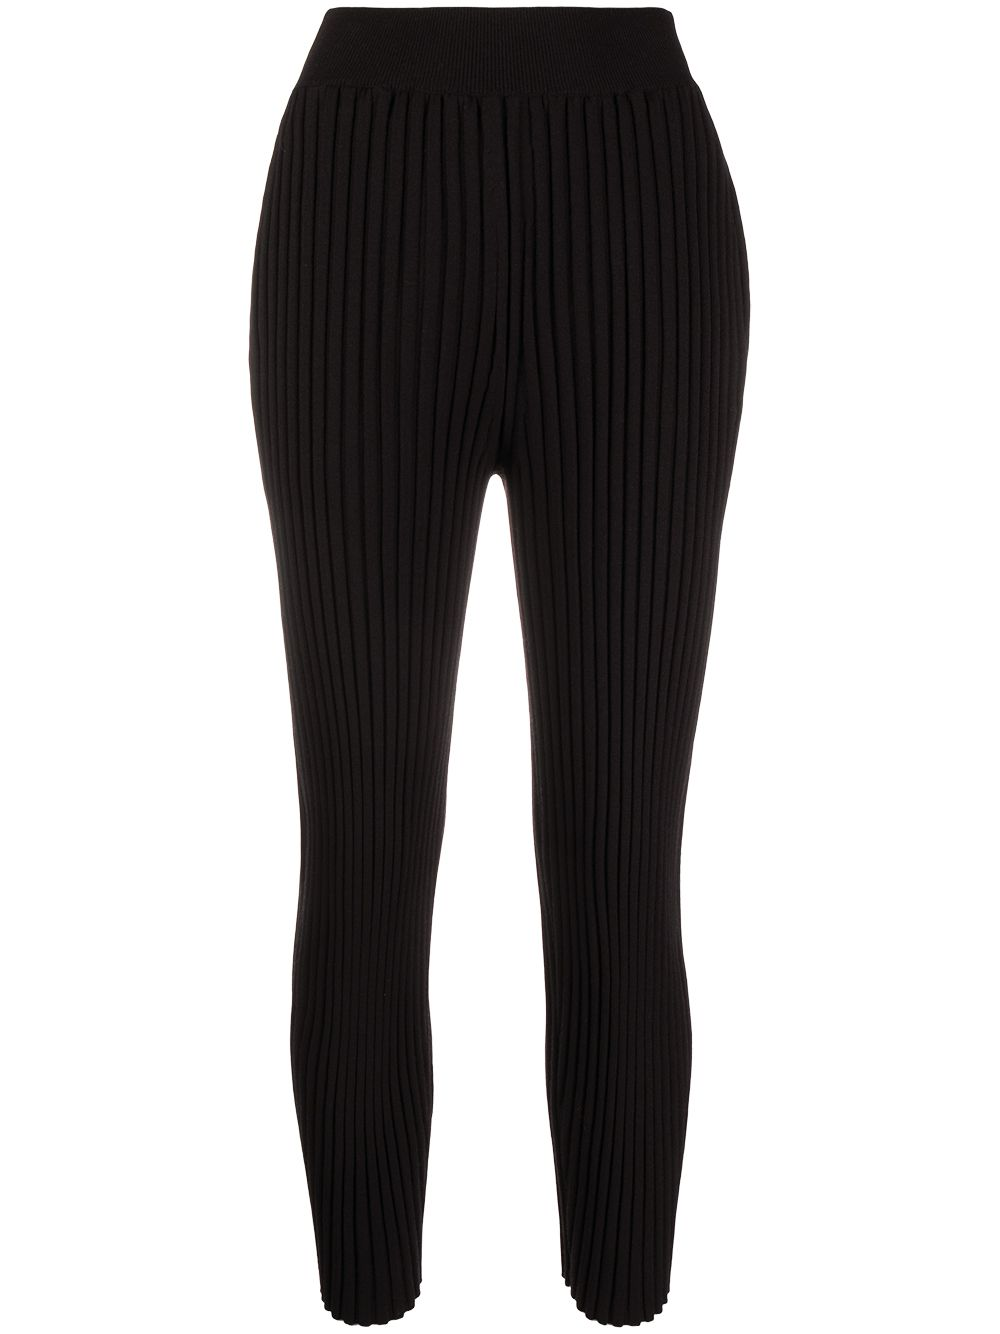 Stella McCartney ribbed knitted trousers - Black von Stella McCartney